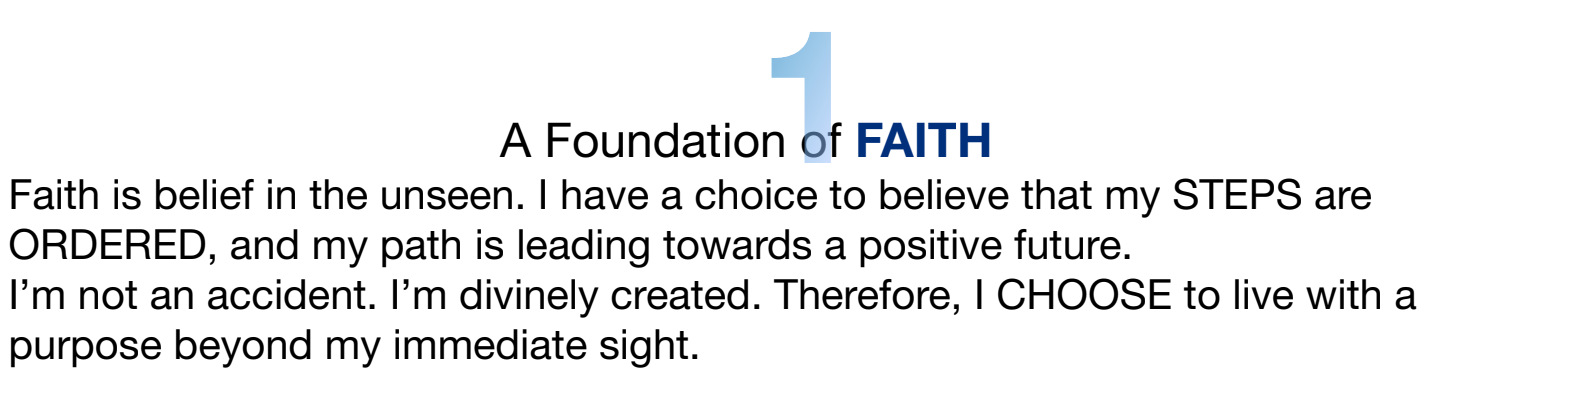 Faith is belief in the unseen. I have a choice to believe that my STEPS are ORDERED, and my path is leading towards a positive future. I'm not an accident. I'm divinely created. Therefore, I CHOOSE to live with a purpose beyond my immediate sight.